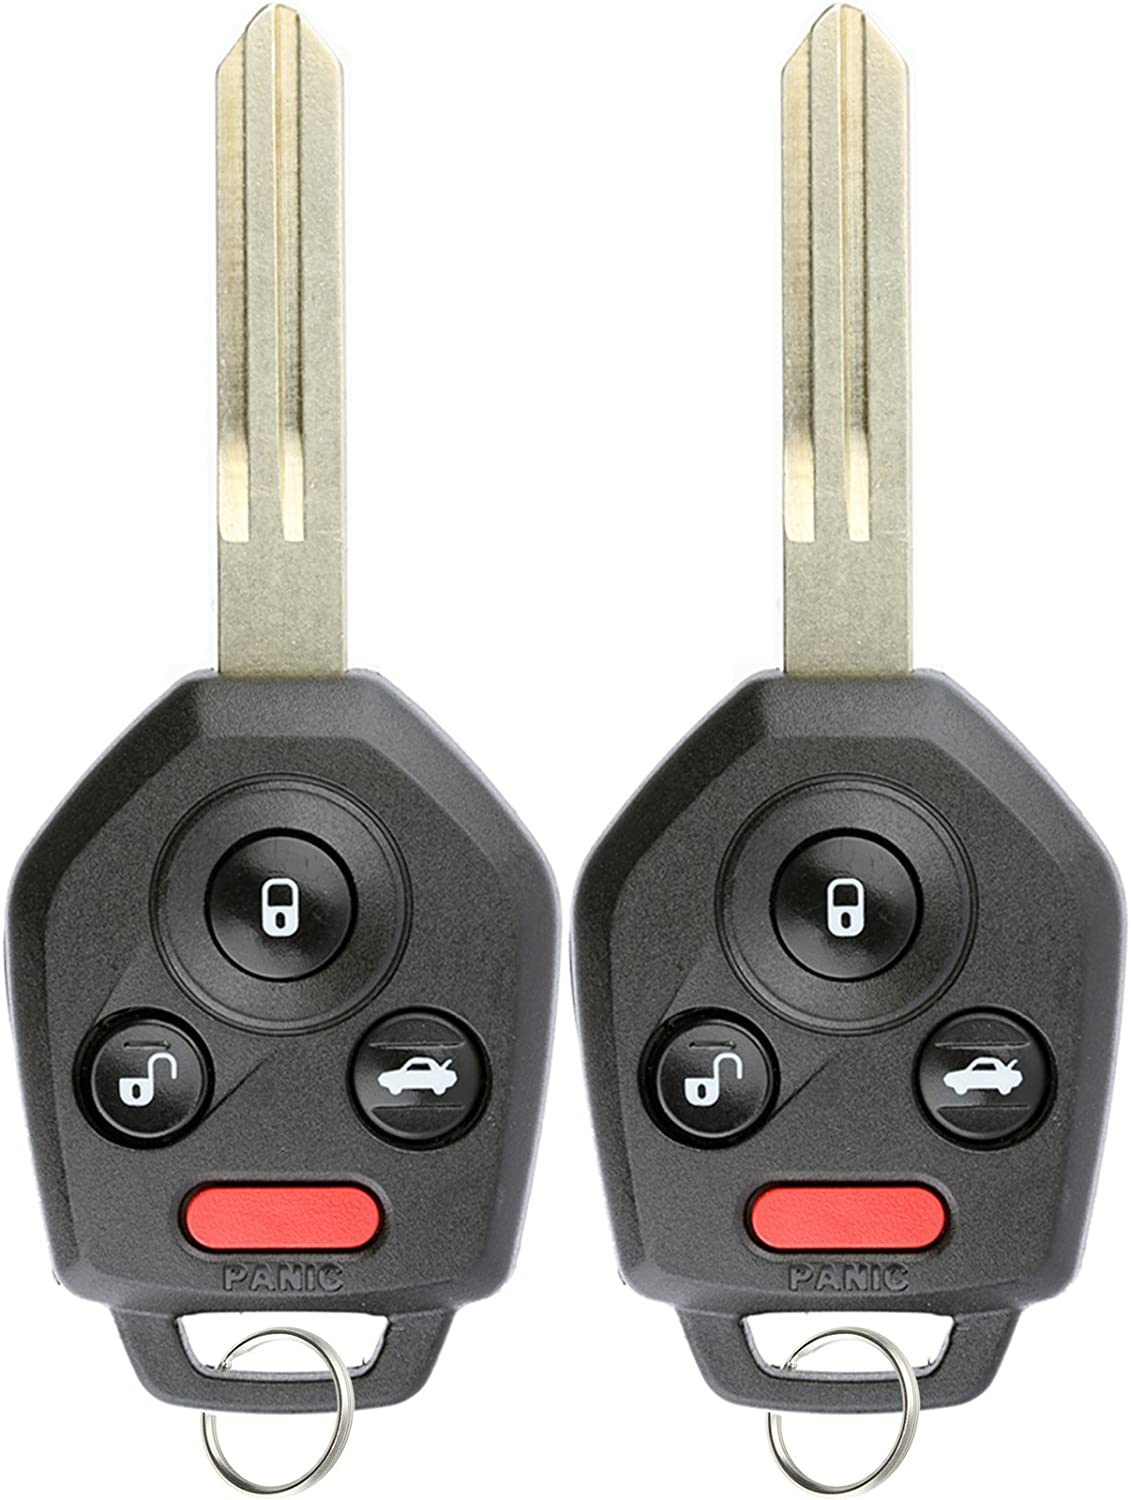 2x Car Transmitter Remote Key for 2012 2013 2014 2015 2016 2017 Subaru Forester